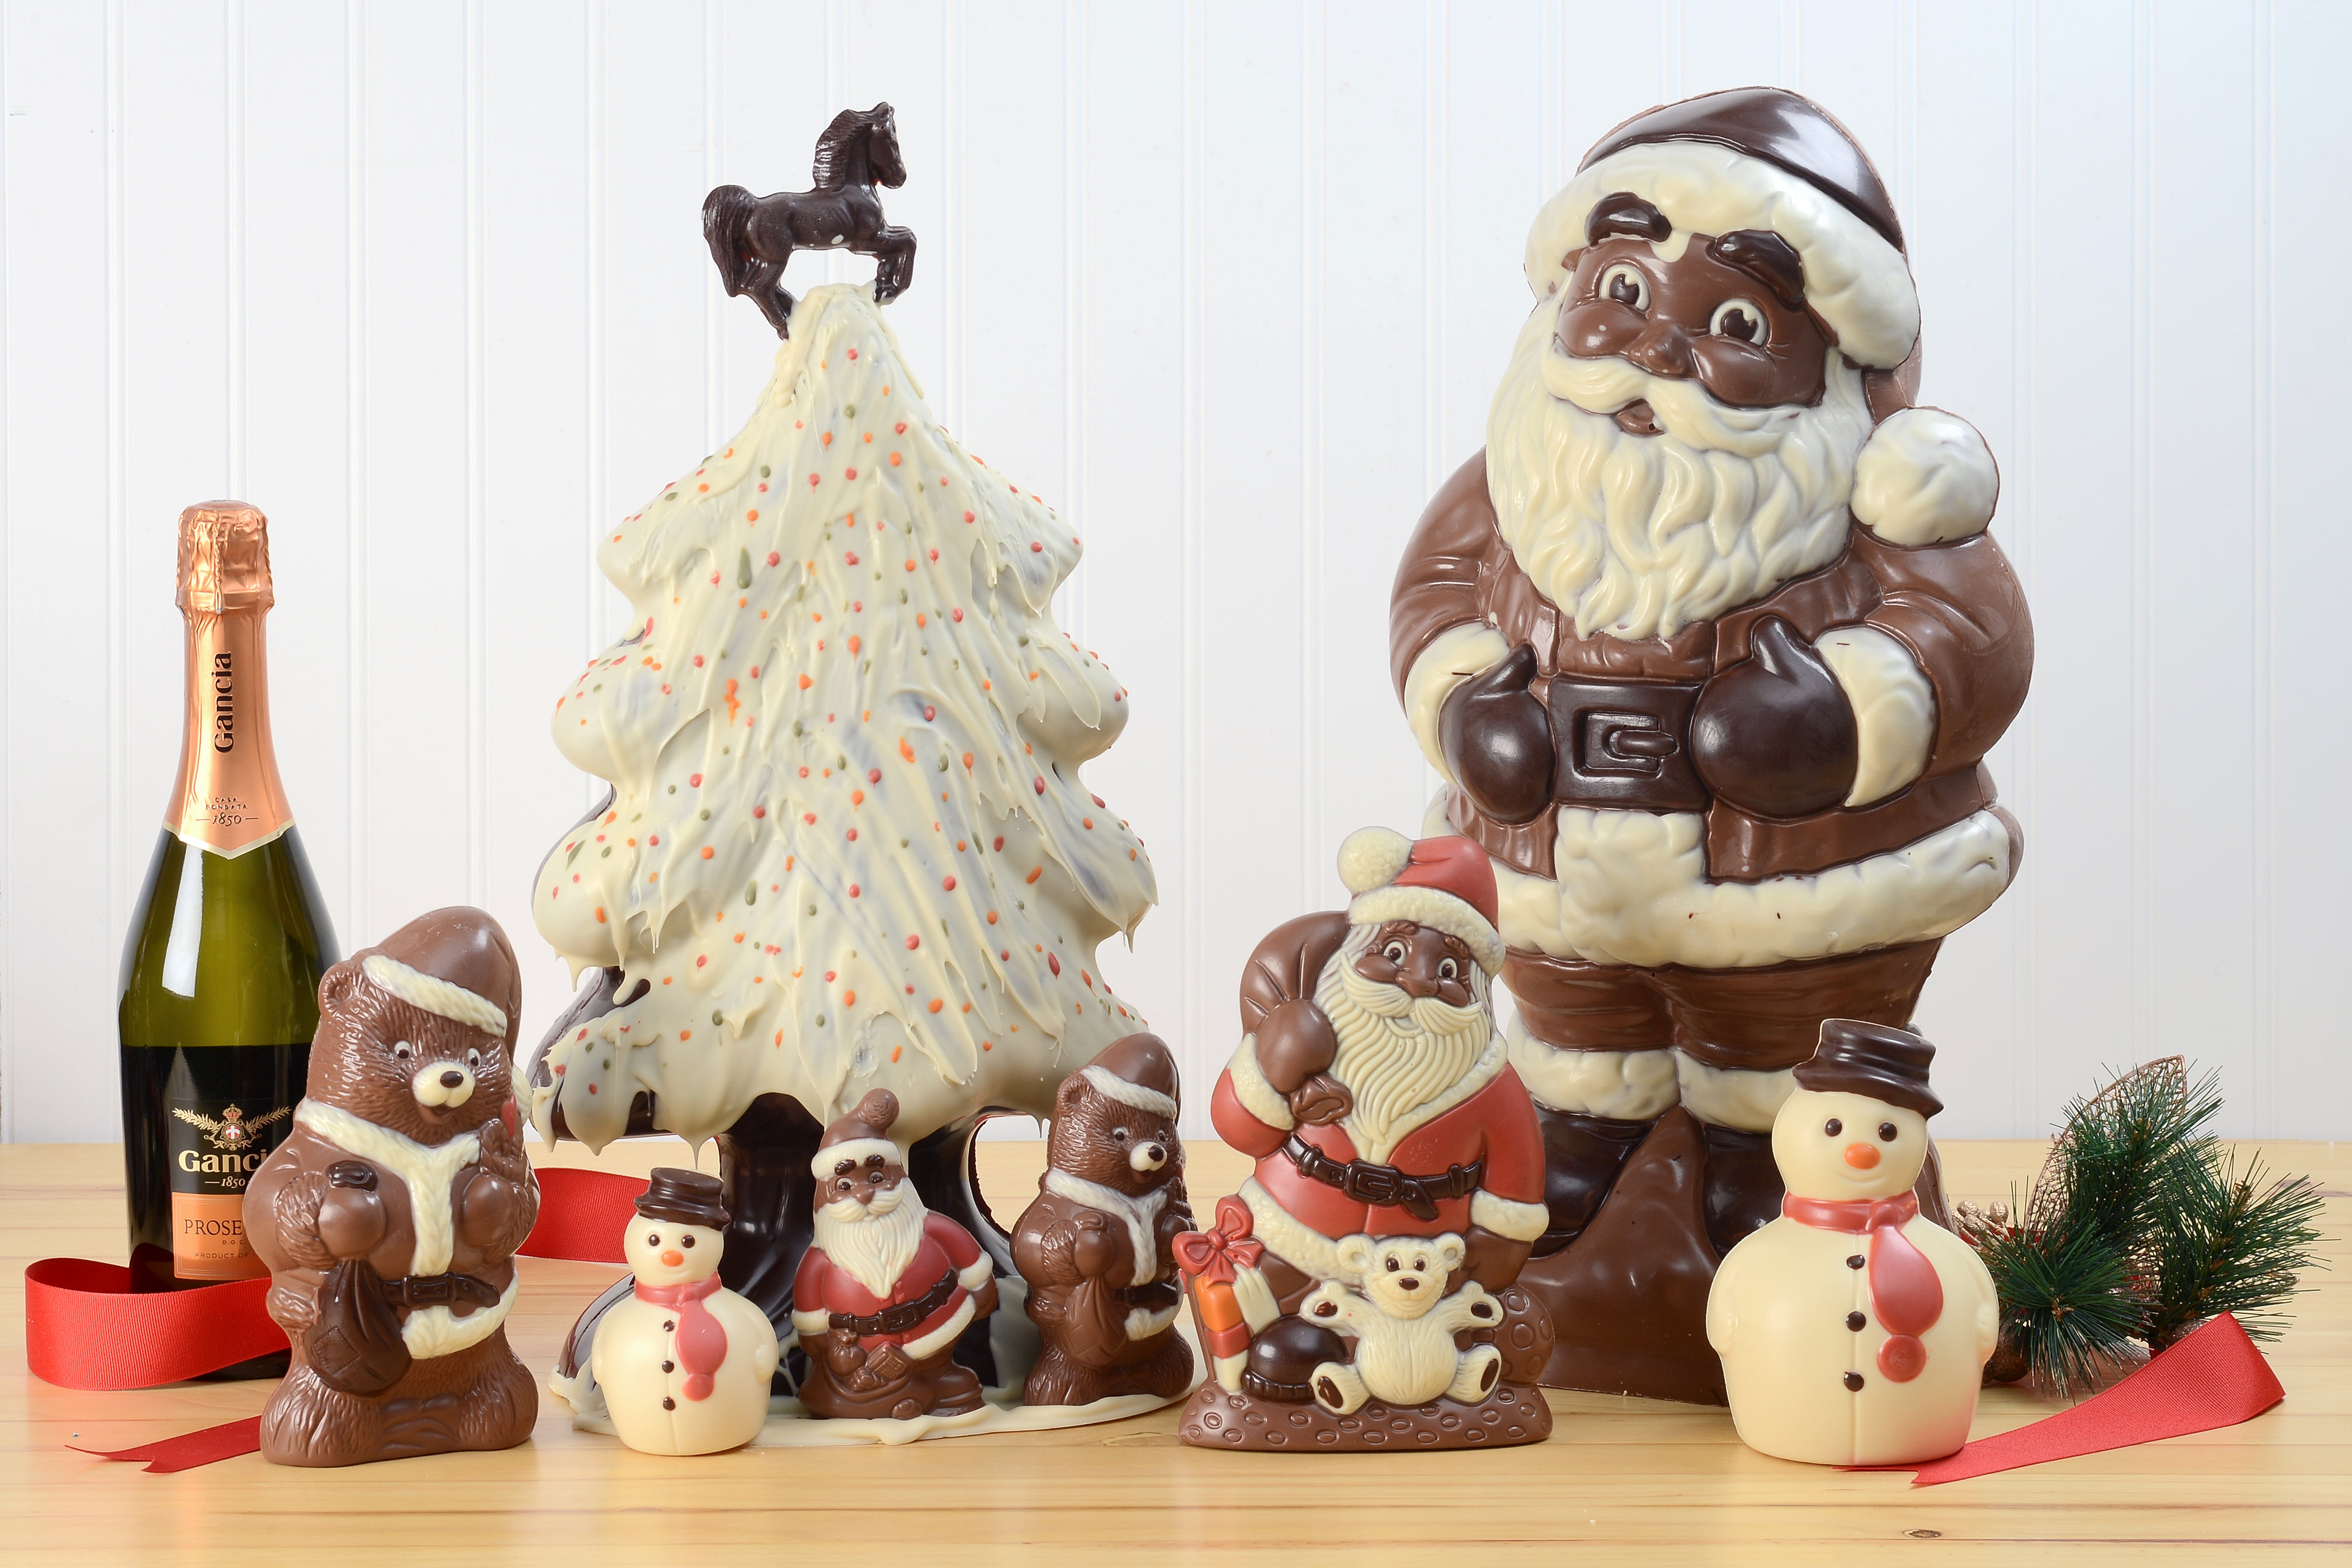 Milk Chocolate Santa Claus with Gifts